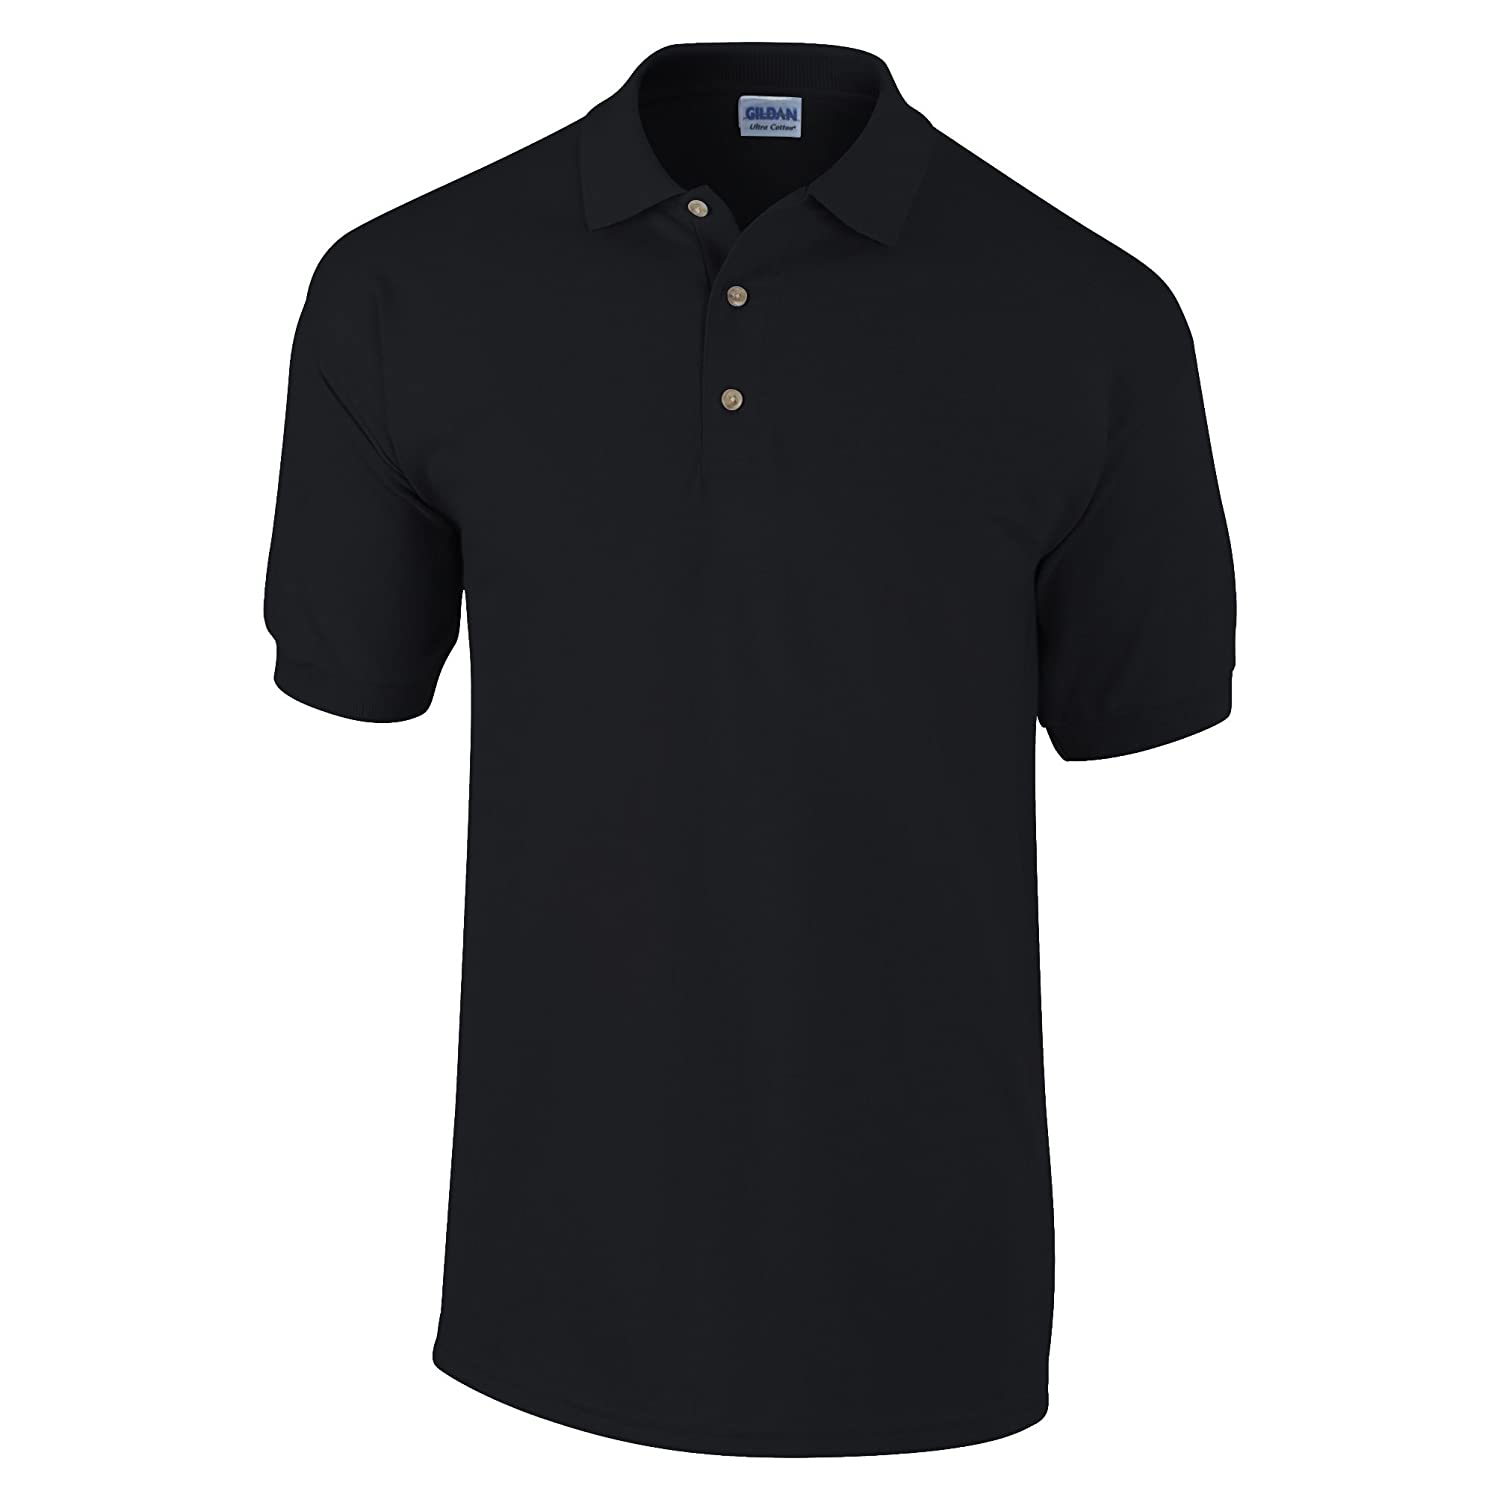 Amazon.com: Gildan Mens Ultra Cotton Pique Polo Shirt: Clothing